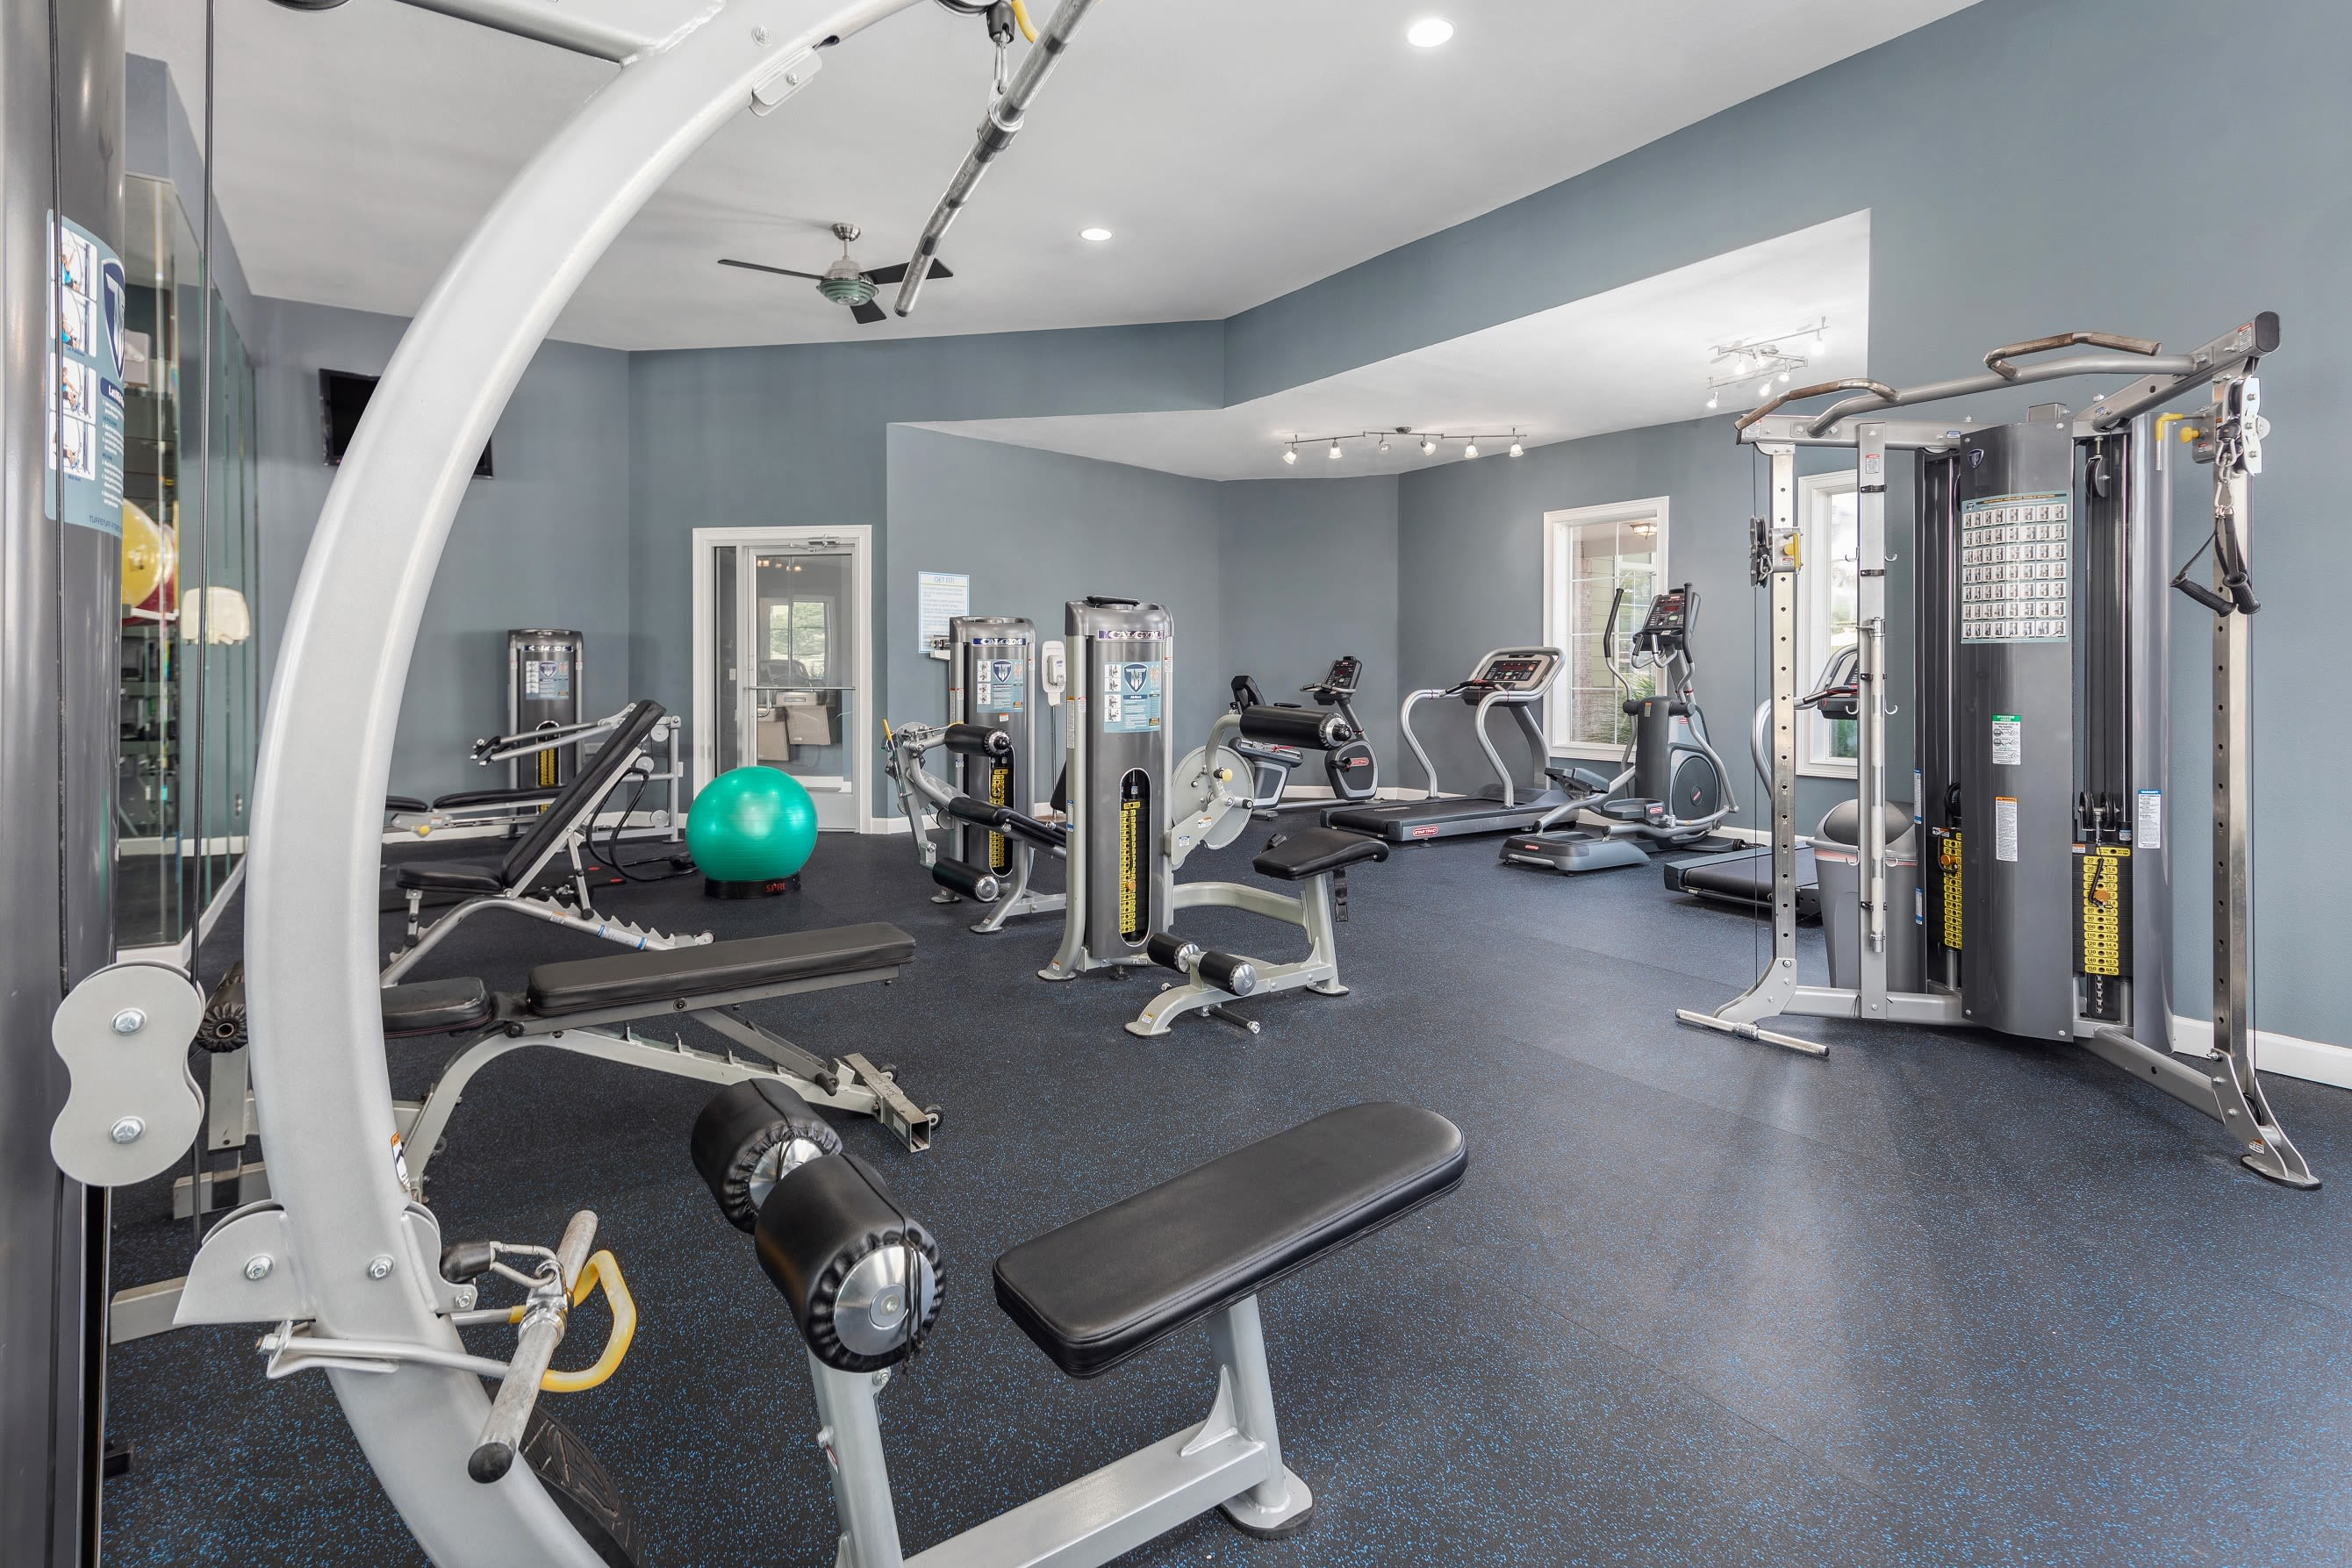 Fitness center at Highlands at Alexander Pointe in Charlotte, North Carolina